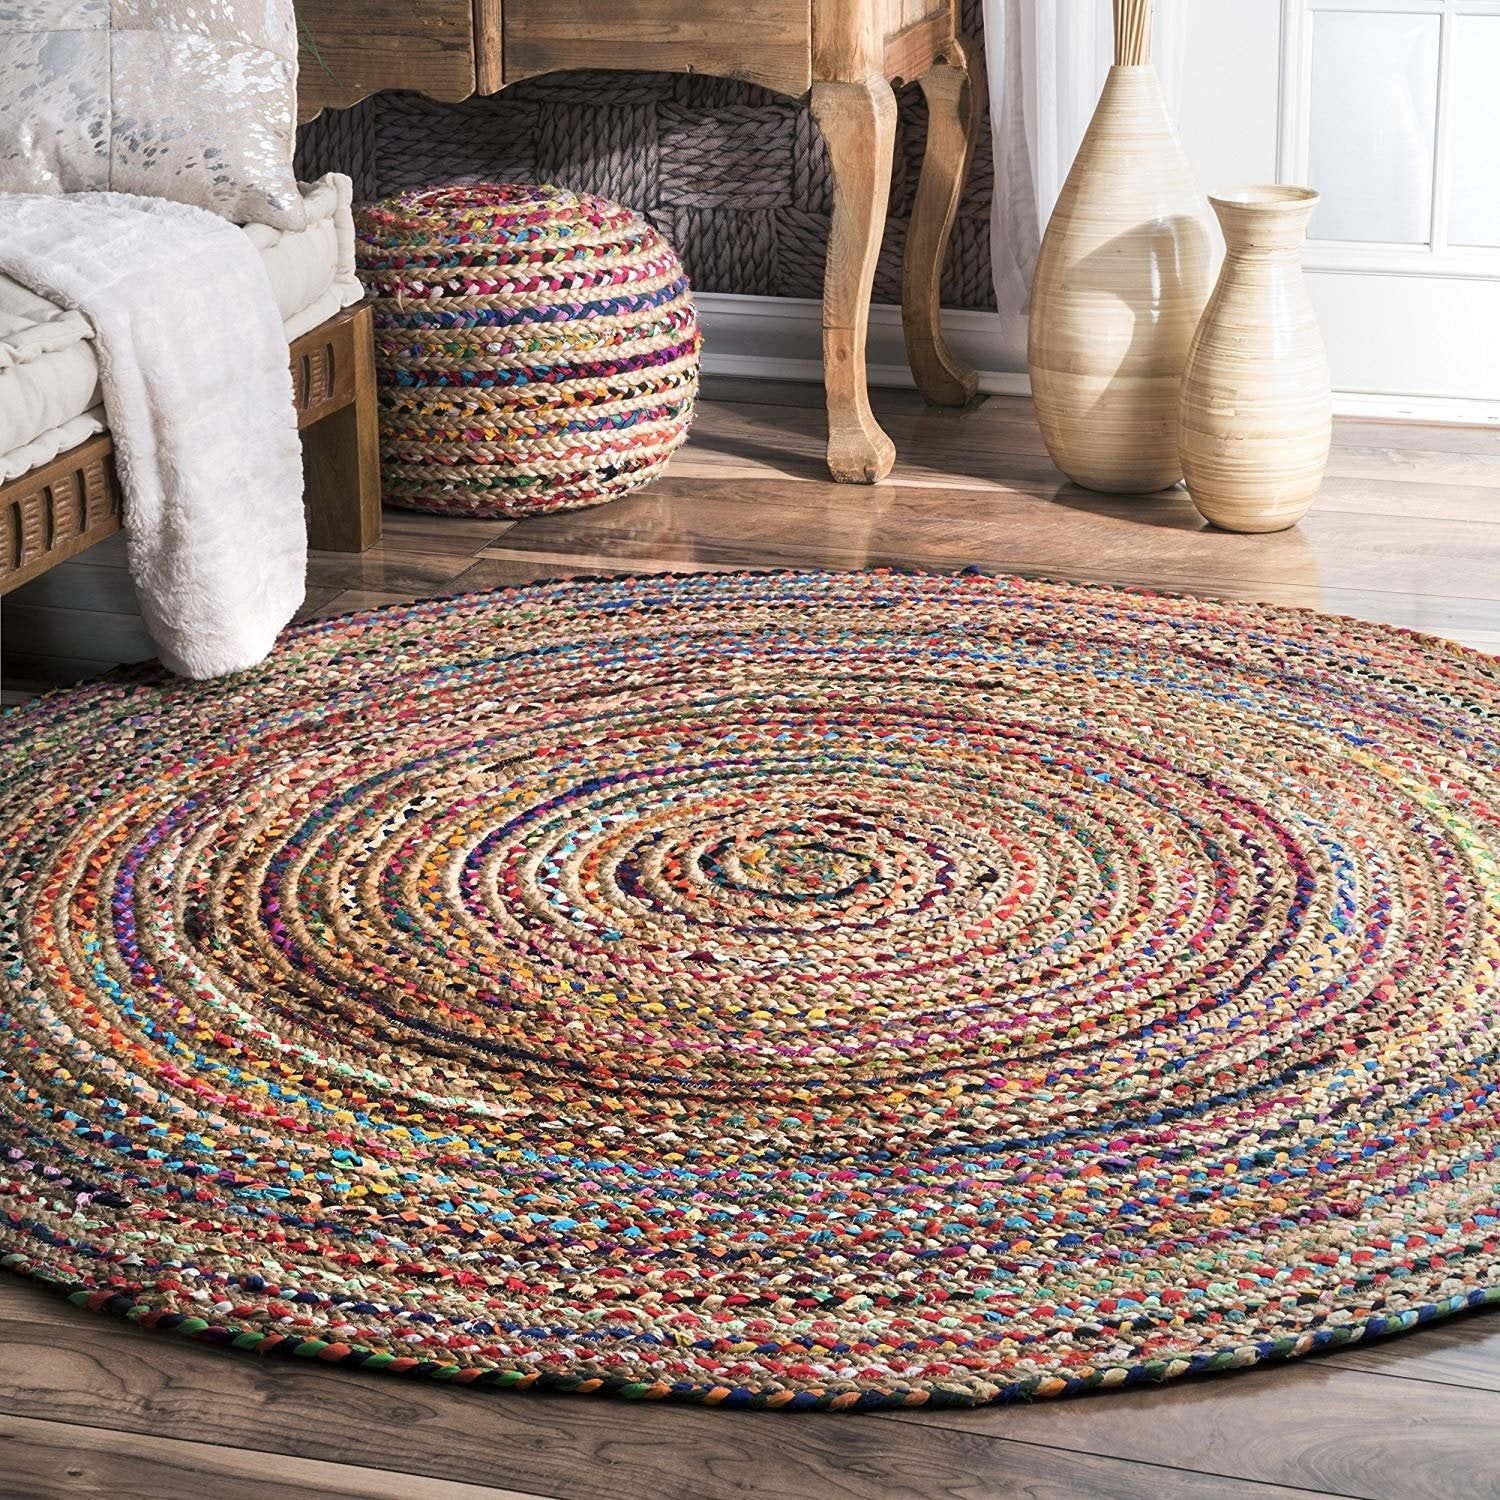 Indian Hand Braided Bohemian Cotton Chindi Area Rug Multi Color